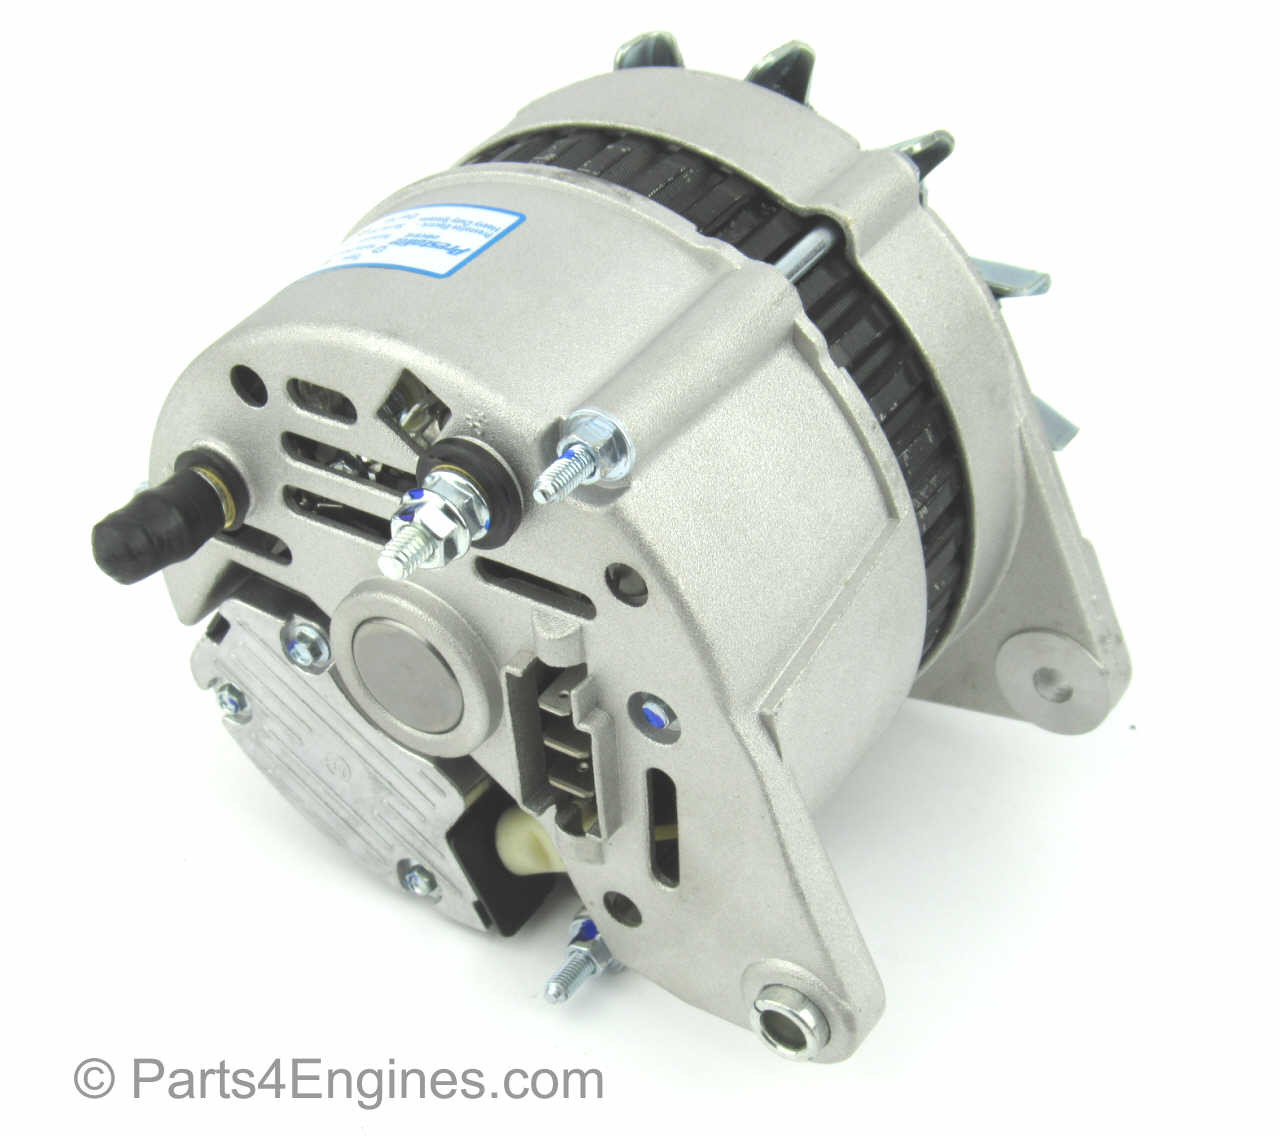 Perkins Prima M50 Alternator